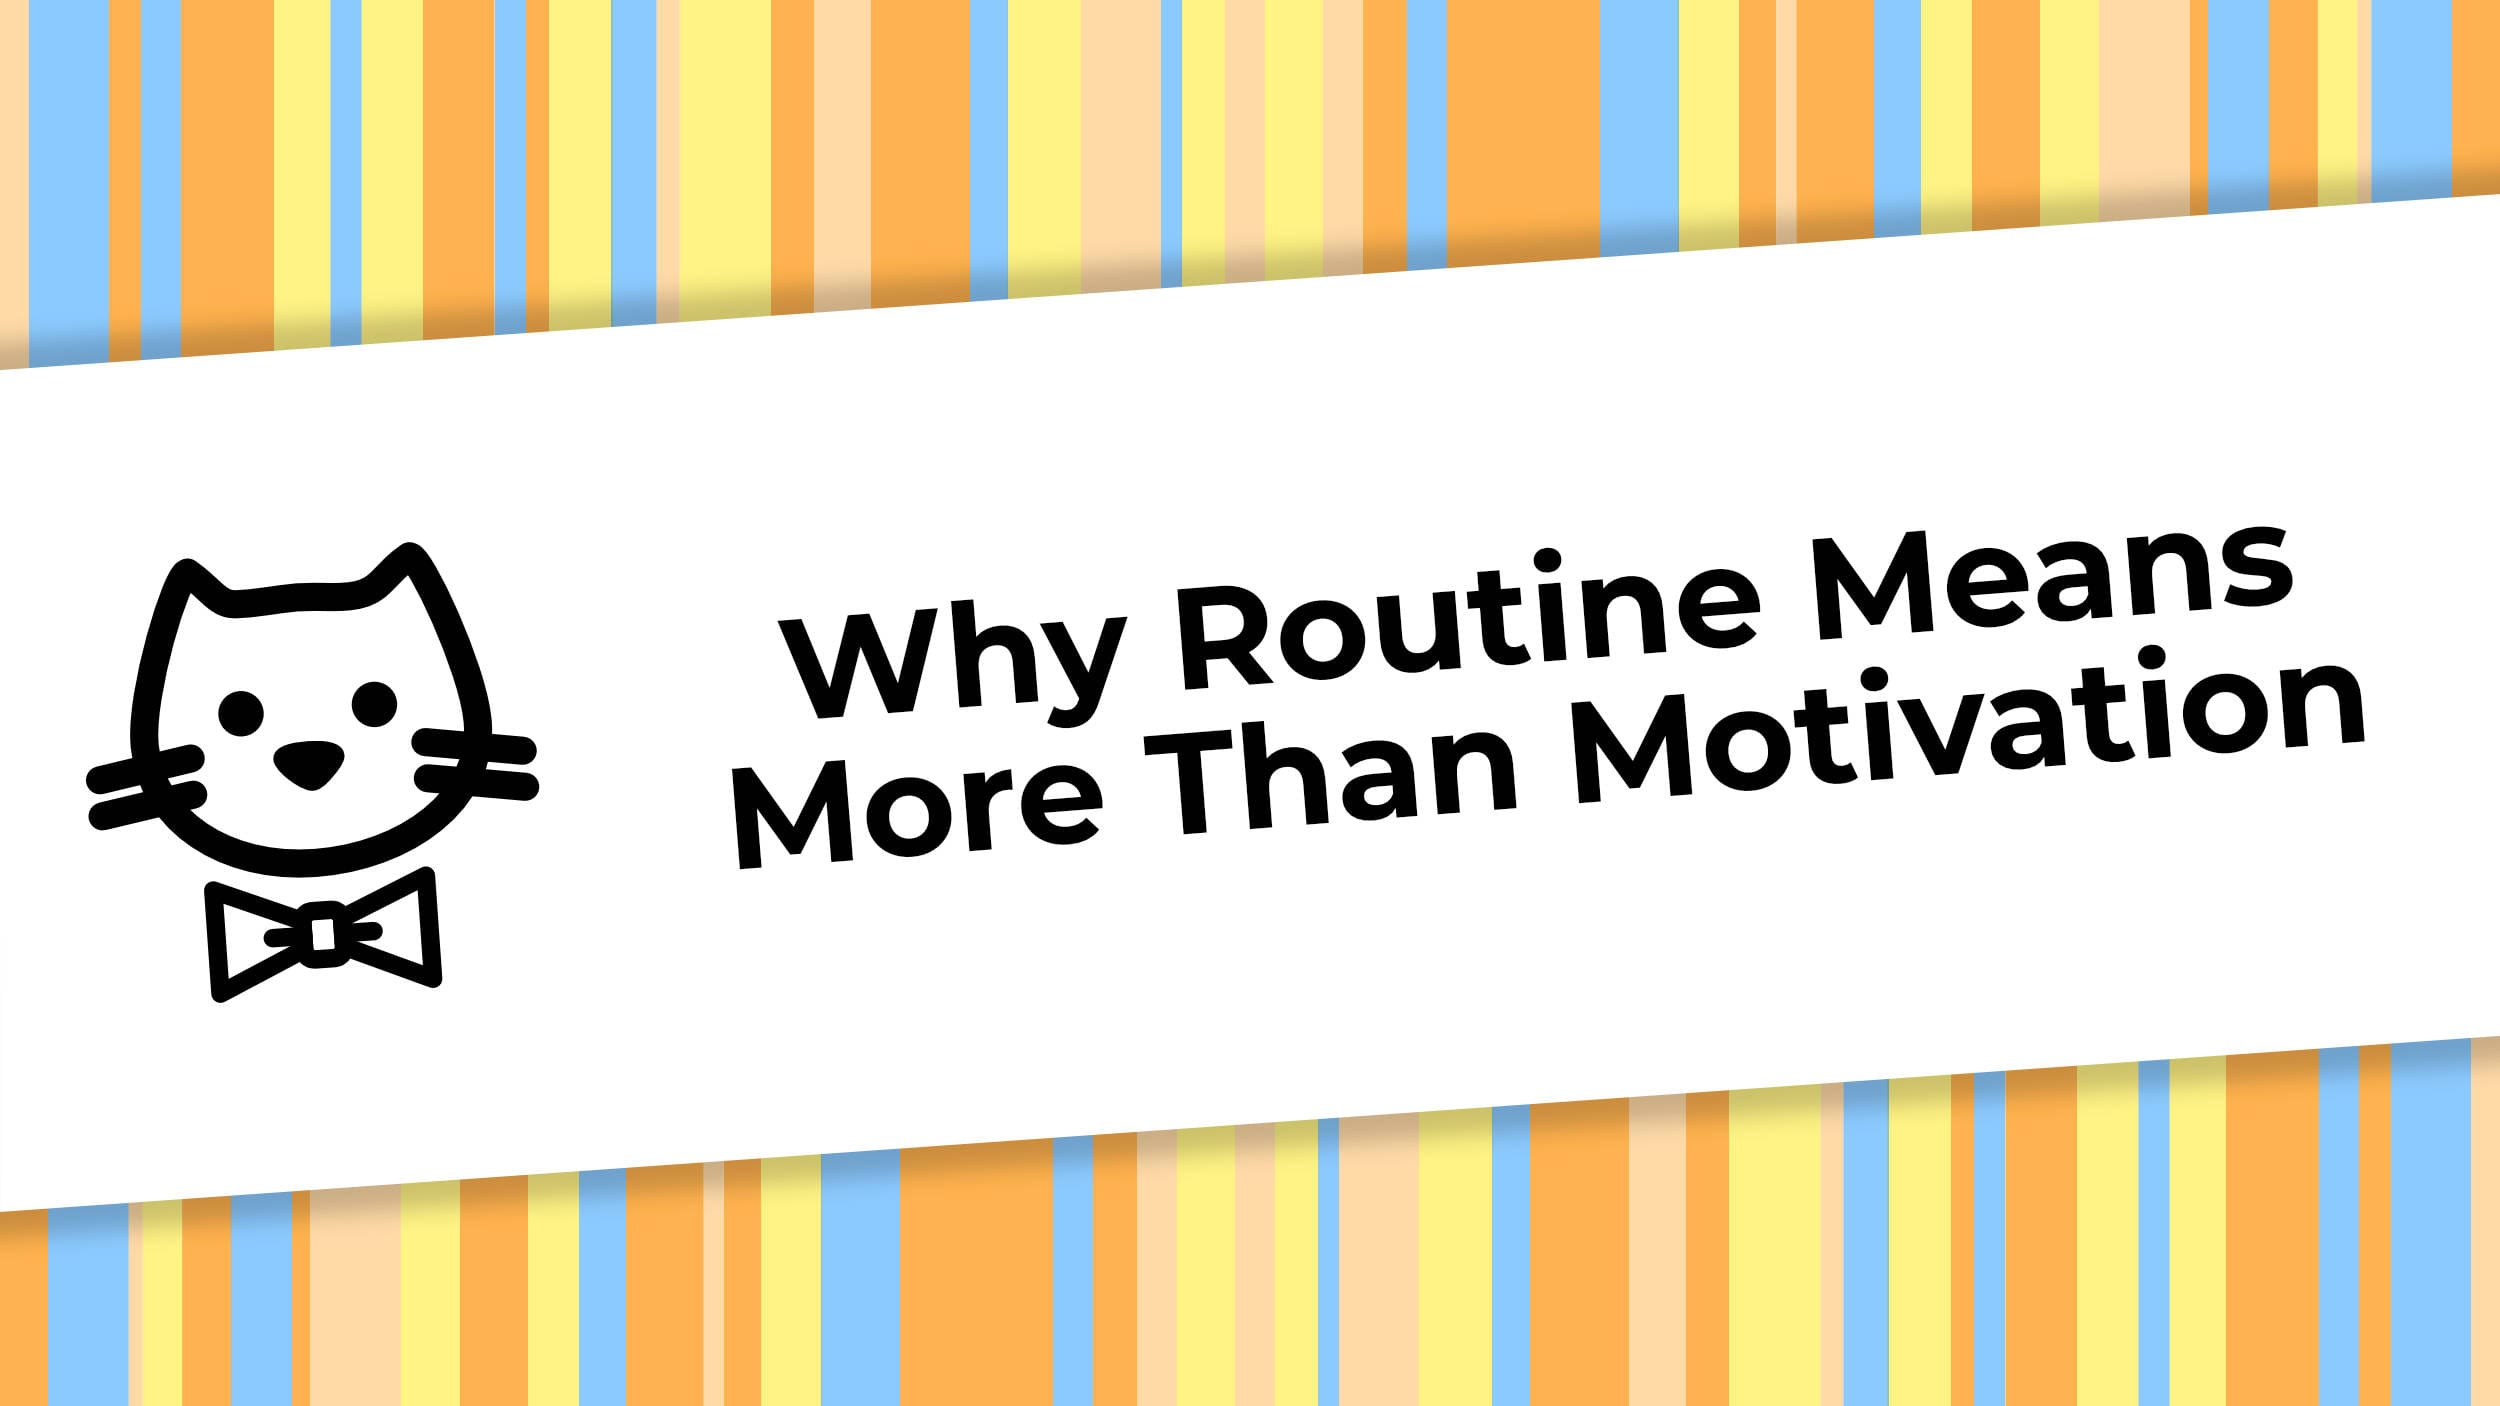 Why Routine Means More Than Motivation.jpg